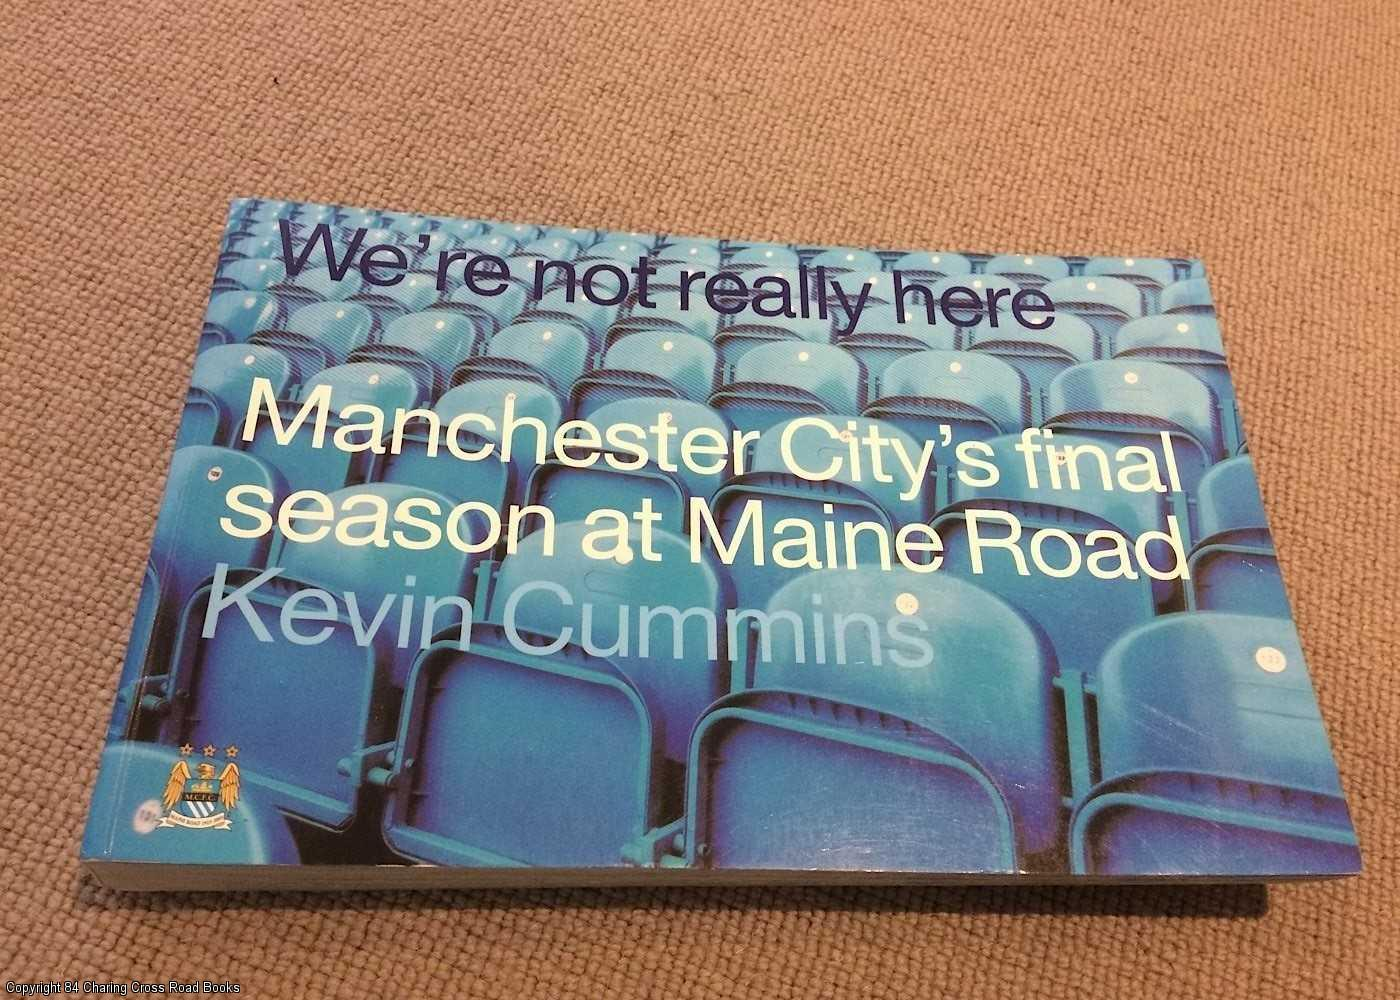 CUMMINS, KEVIN - We're Not Really Here: Manchester City's Final Season at Maine Road